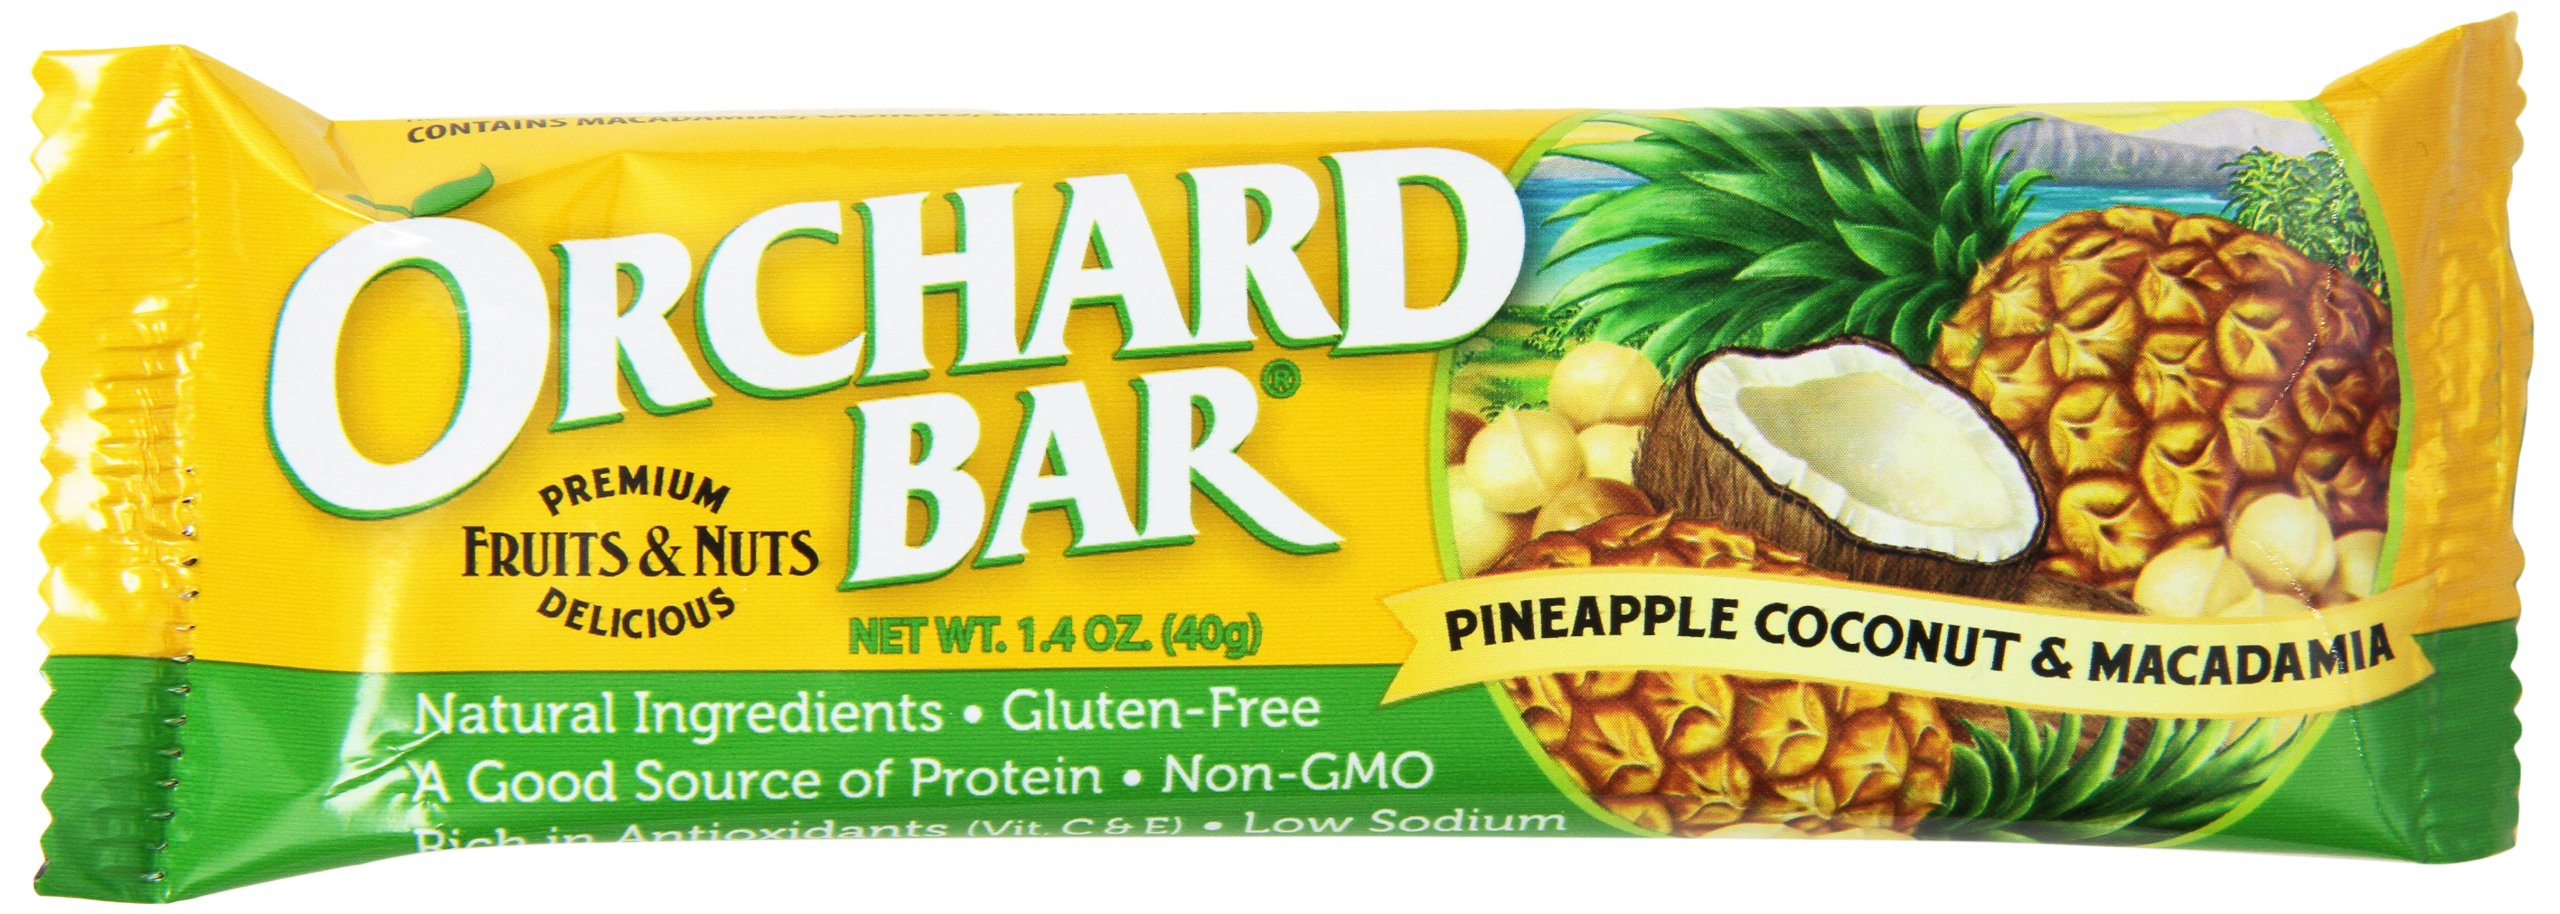 Orchard Bars Macadamia Fruit and Nut Bar, Pineapple Coconut, 1.4 Ounce (Pack of 12)